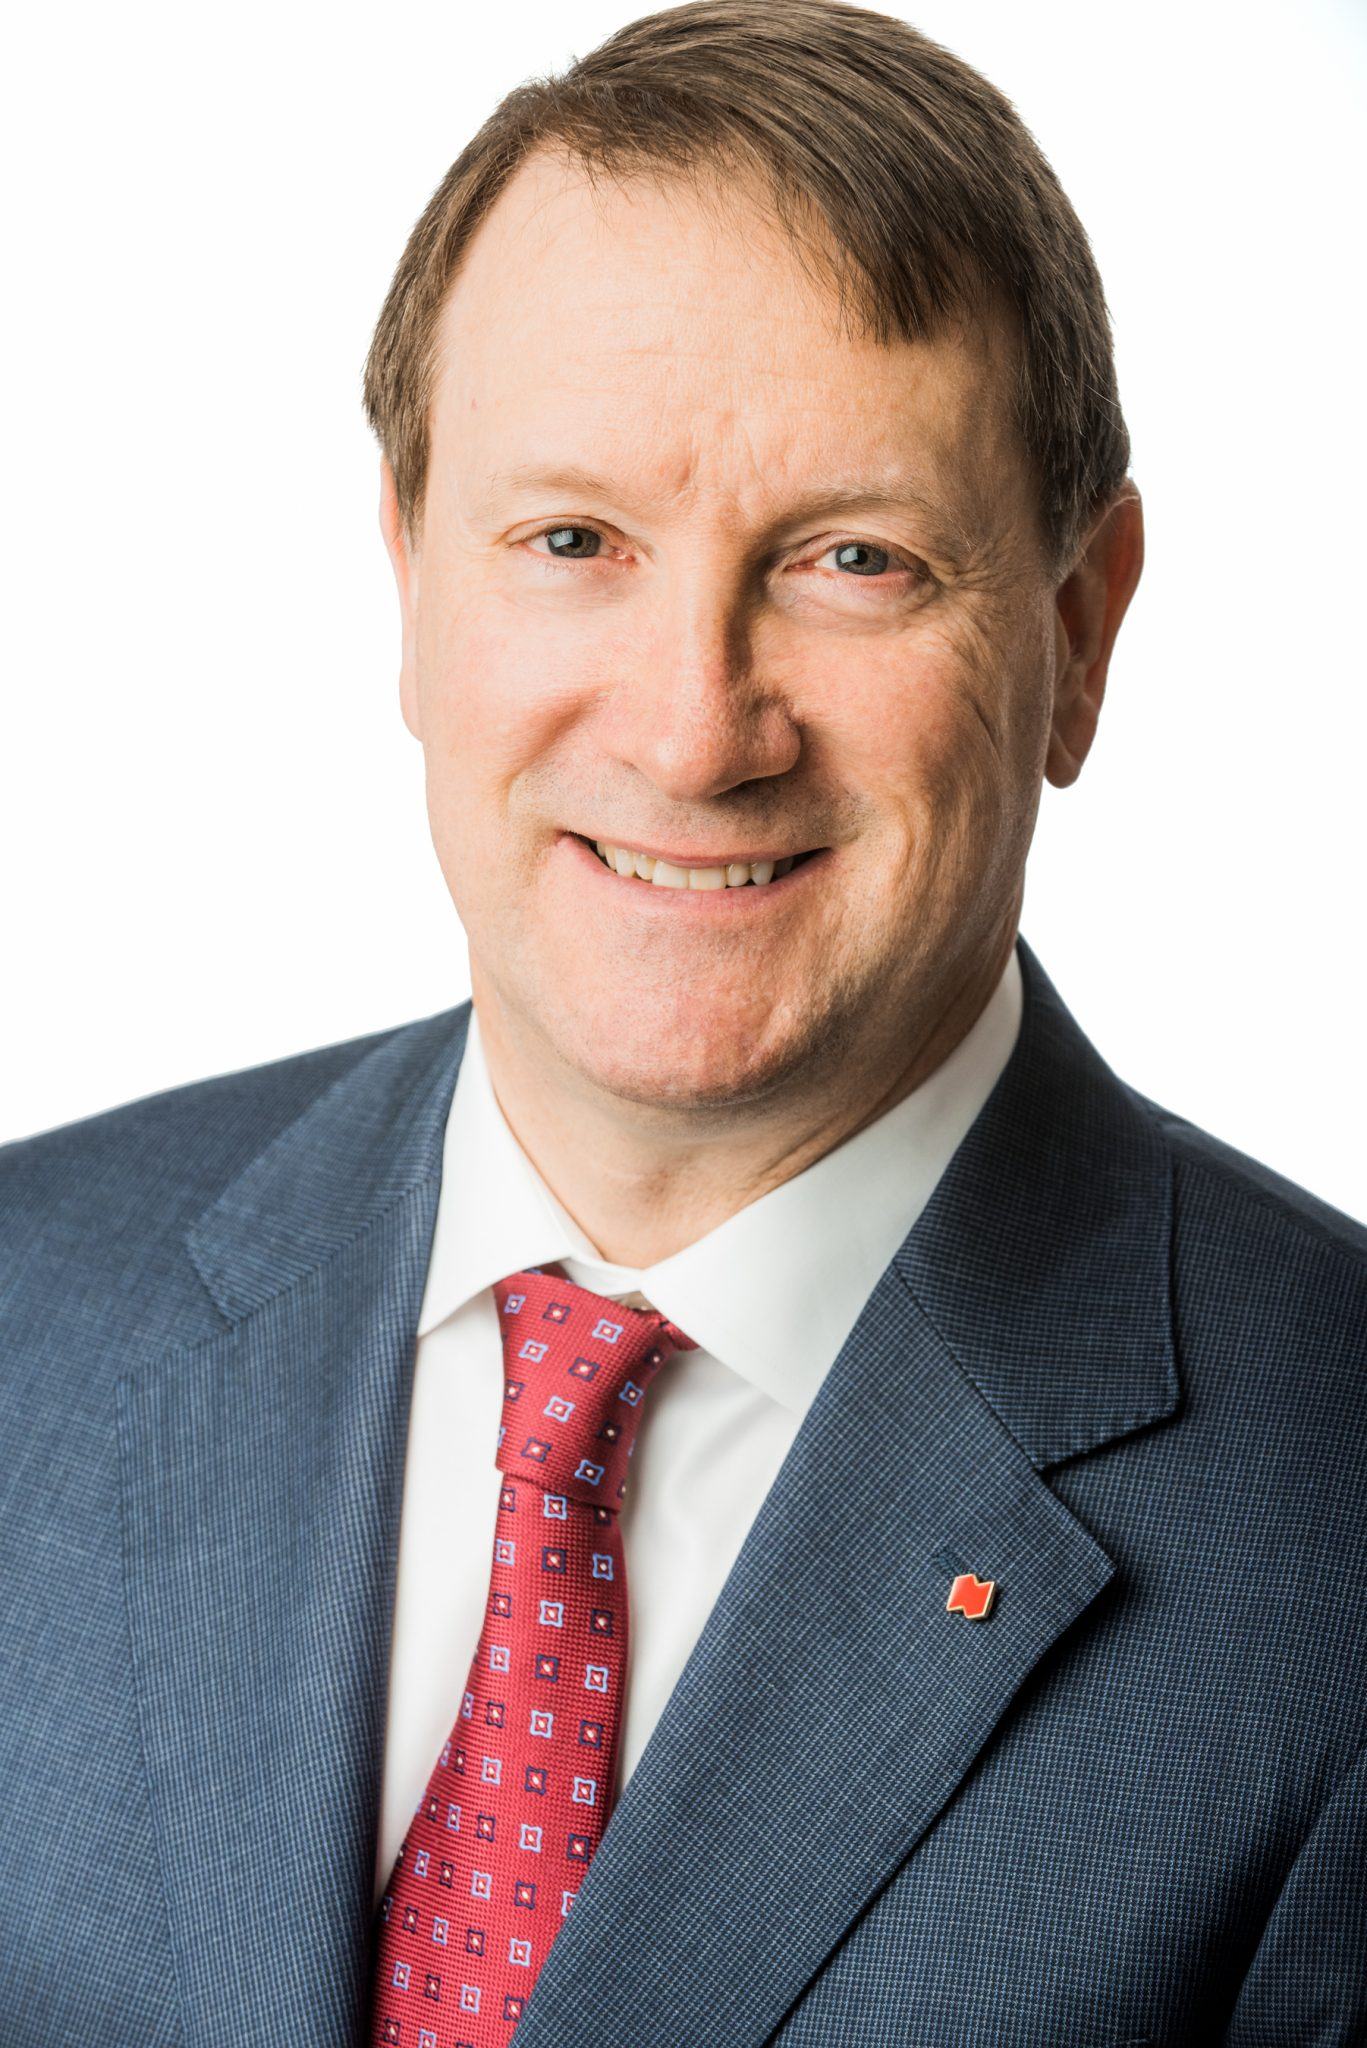 National Bank of Canada CEO Louis Vachon